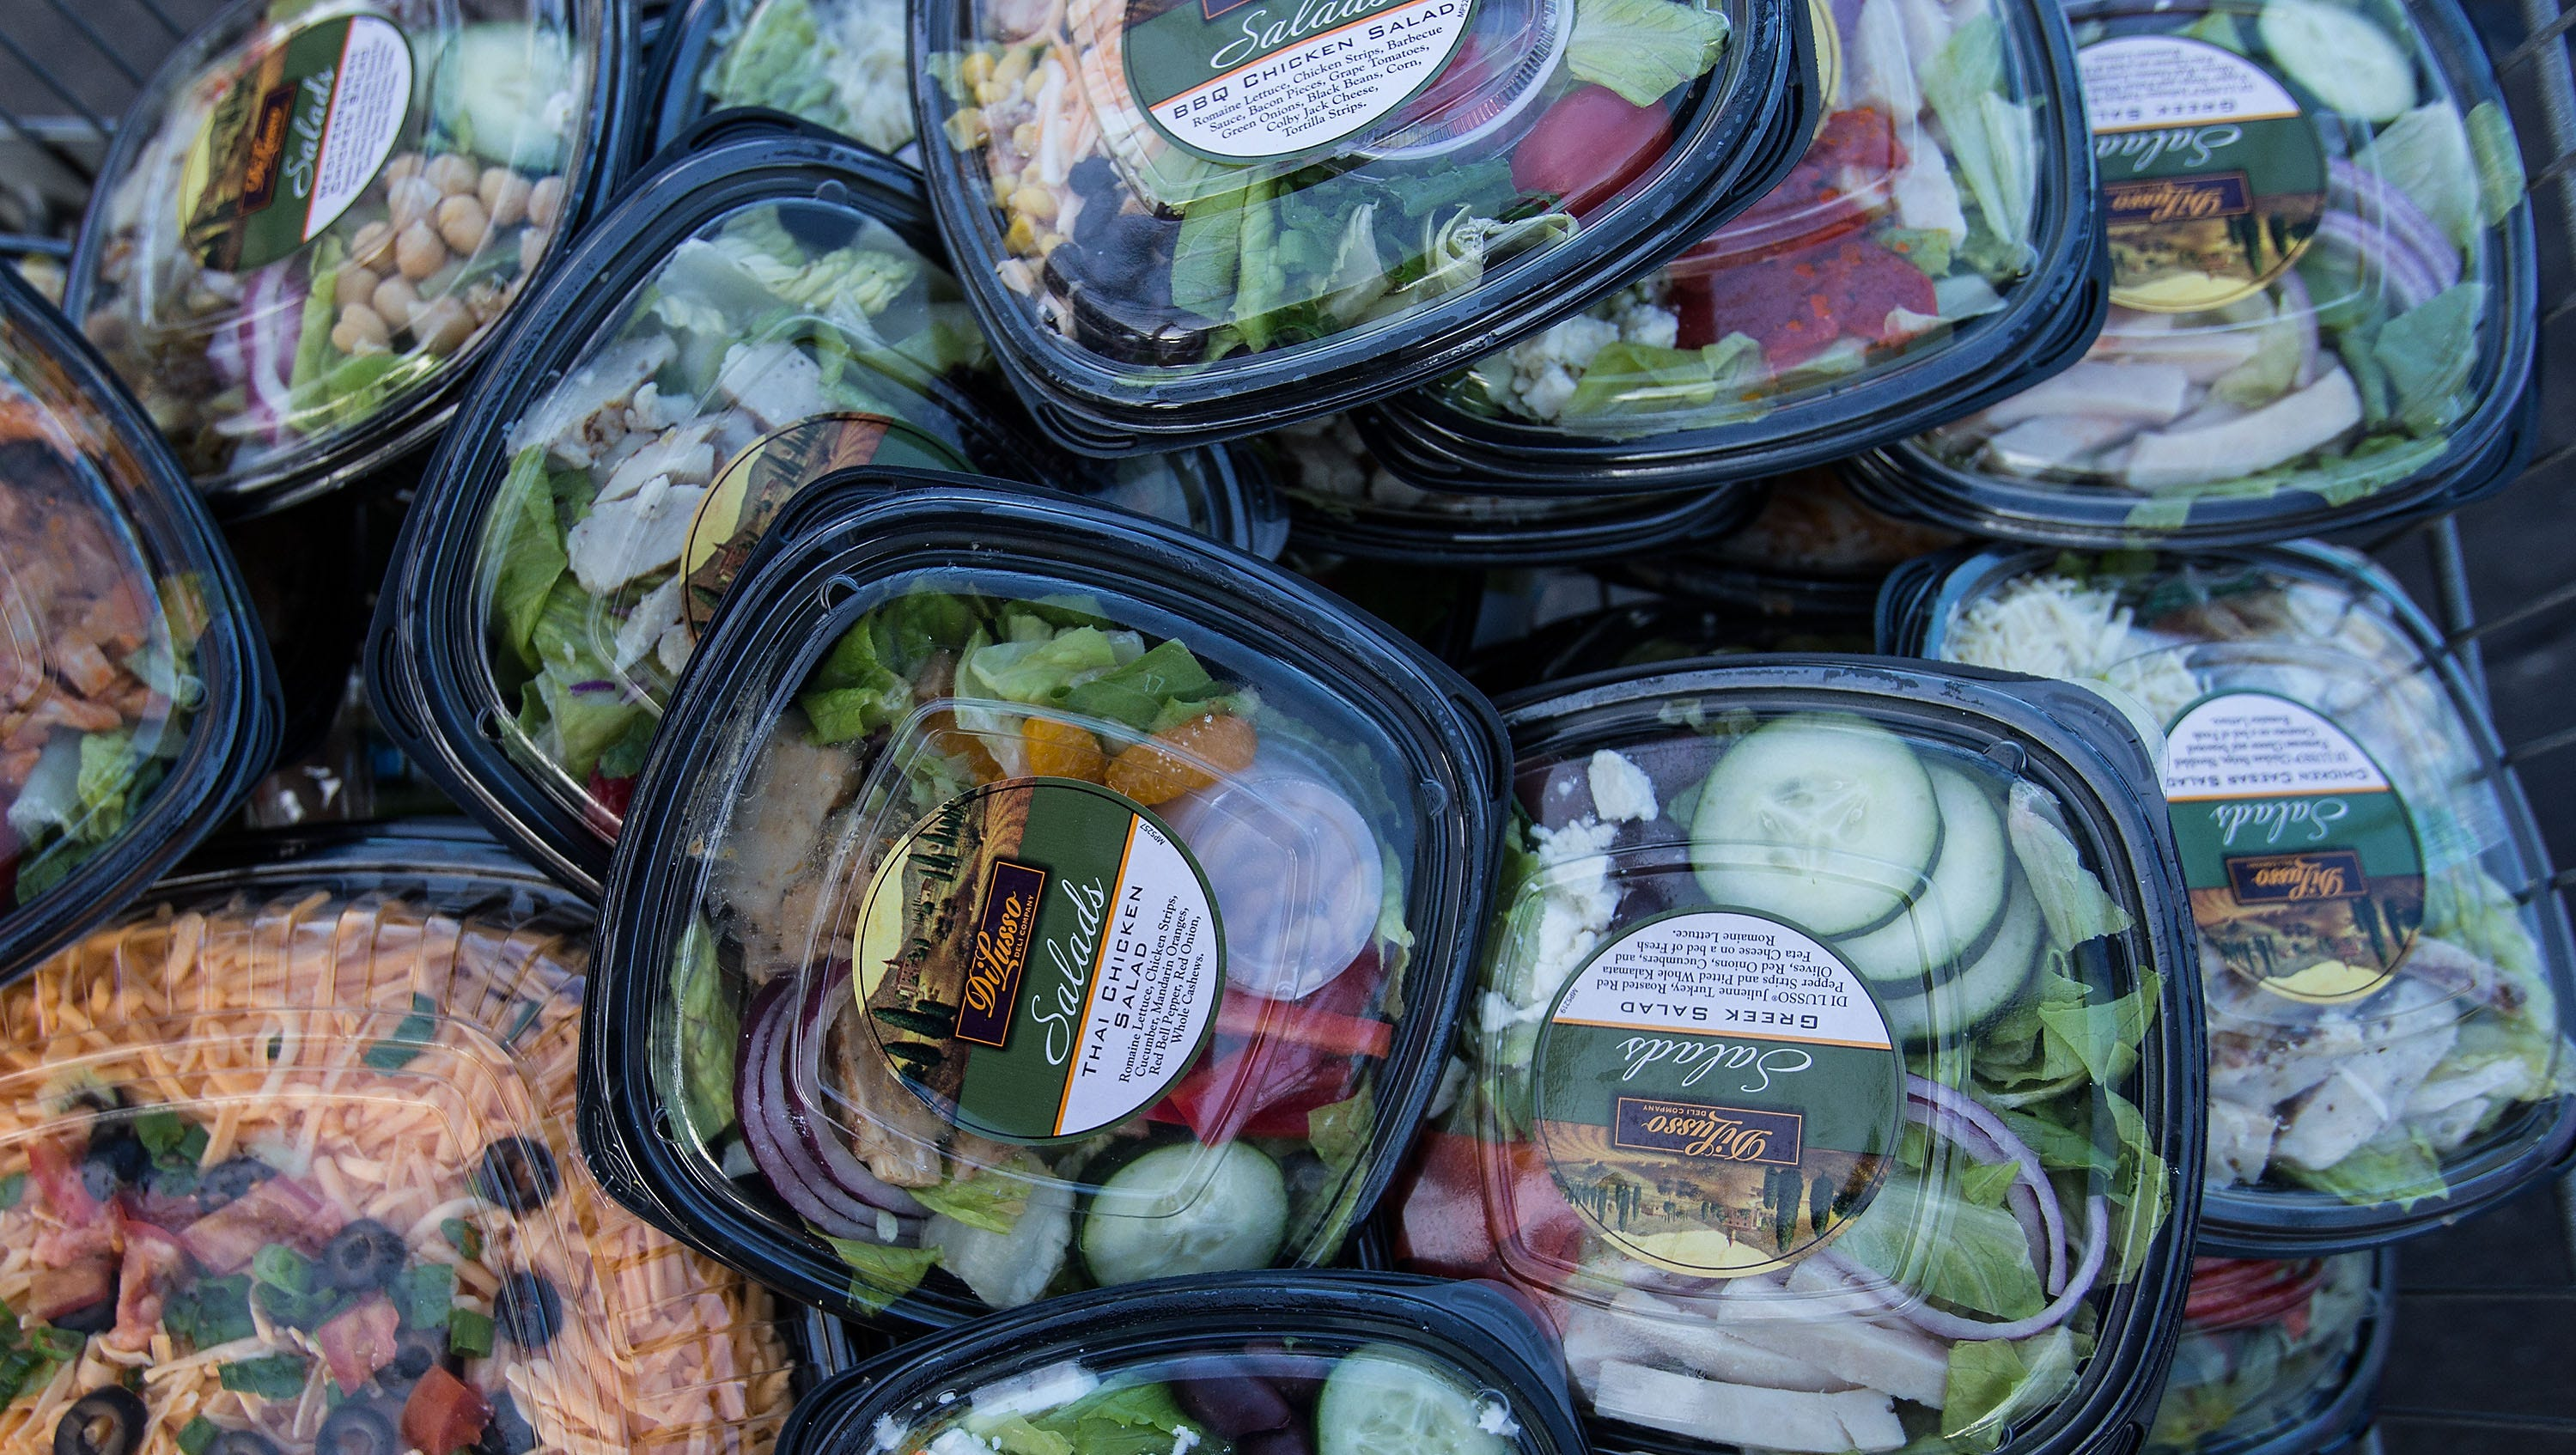 All the reasons to stop wasting food, starting with it makes climate change worse